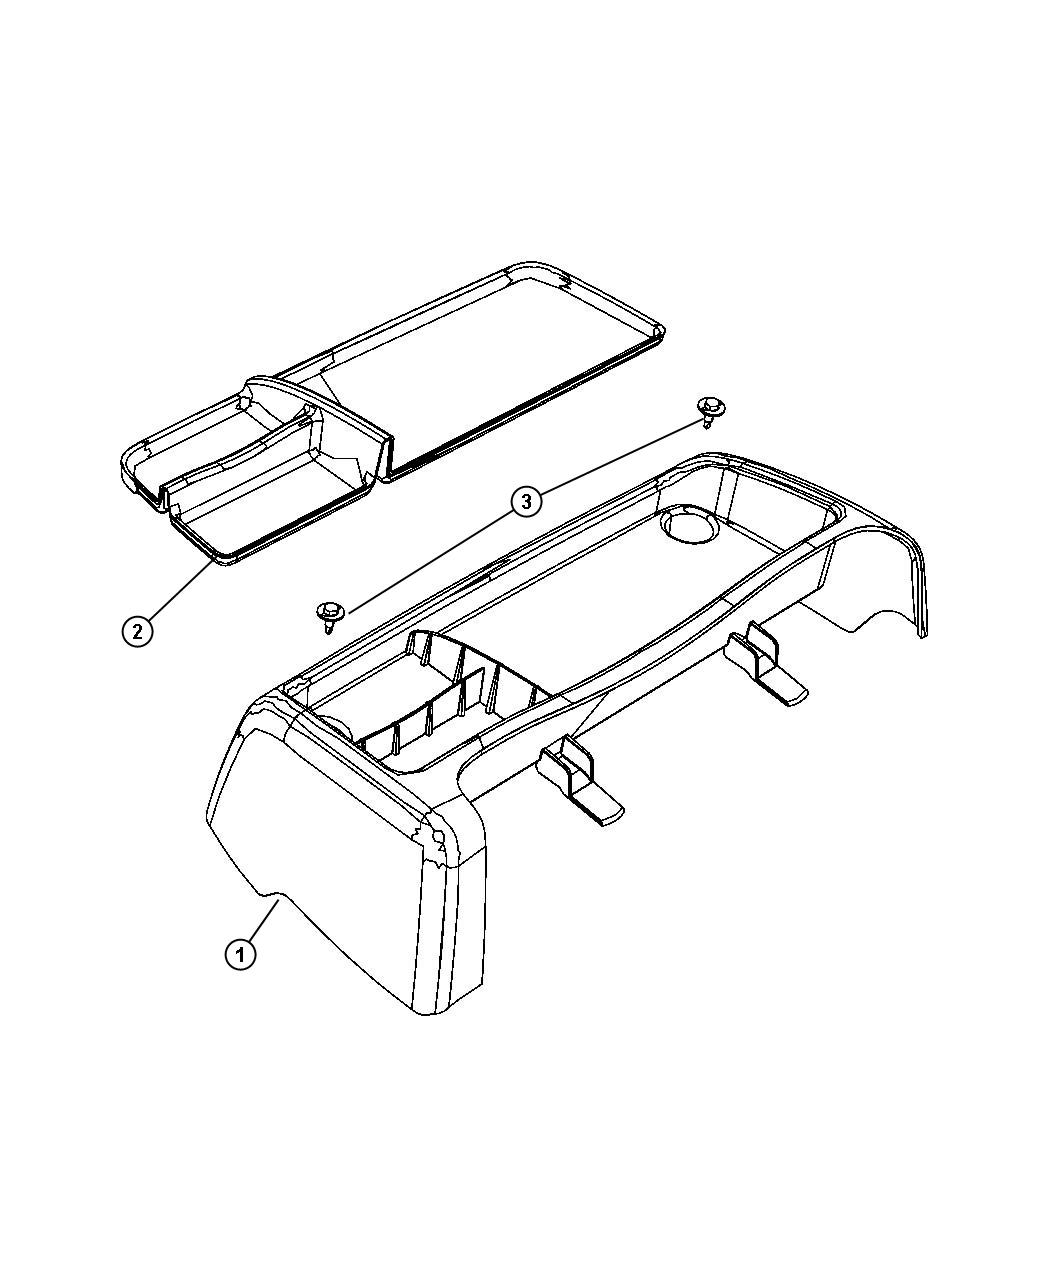 jeep cargo area with What Is The Difference Between Dodge Tradesman And Slt on 436849232580253411 further 496944140115860453 together with 15ztw 2003 Jeep Liberty Drive Where Fuel Filter furthermore Frameless C er Van Windows For Sale moreover Safari Straps 1 Cargo   Small Saf 53 2530.